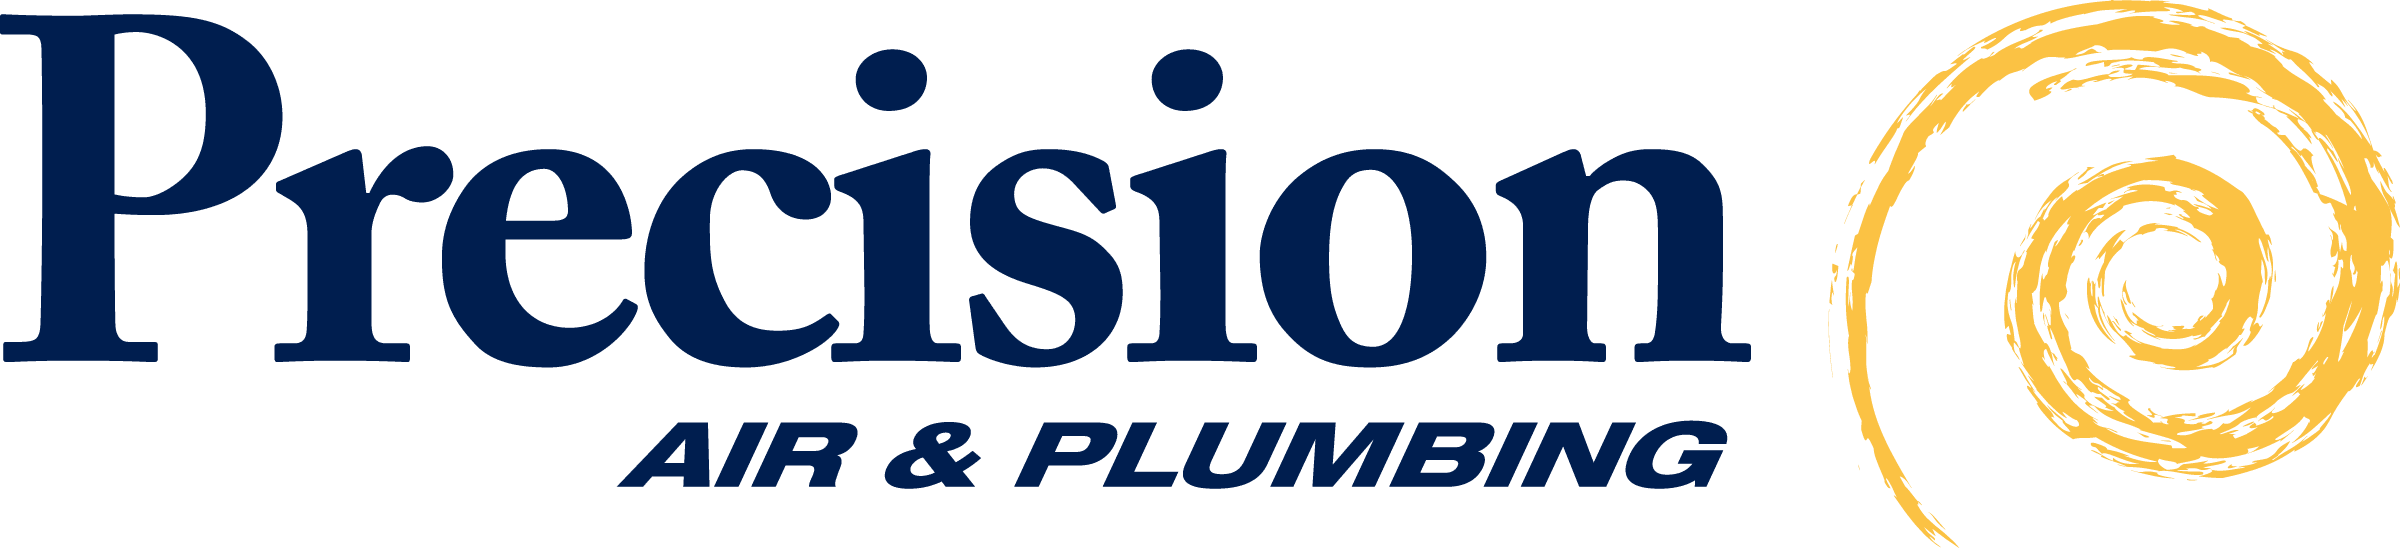 AC Repair by Precision Air & Plumbing logo